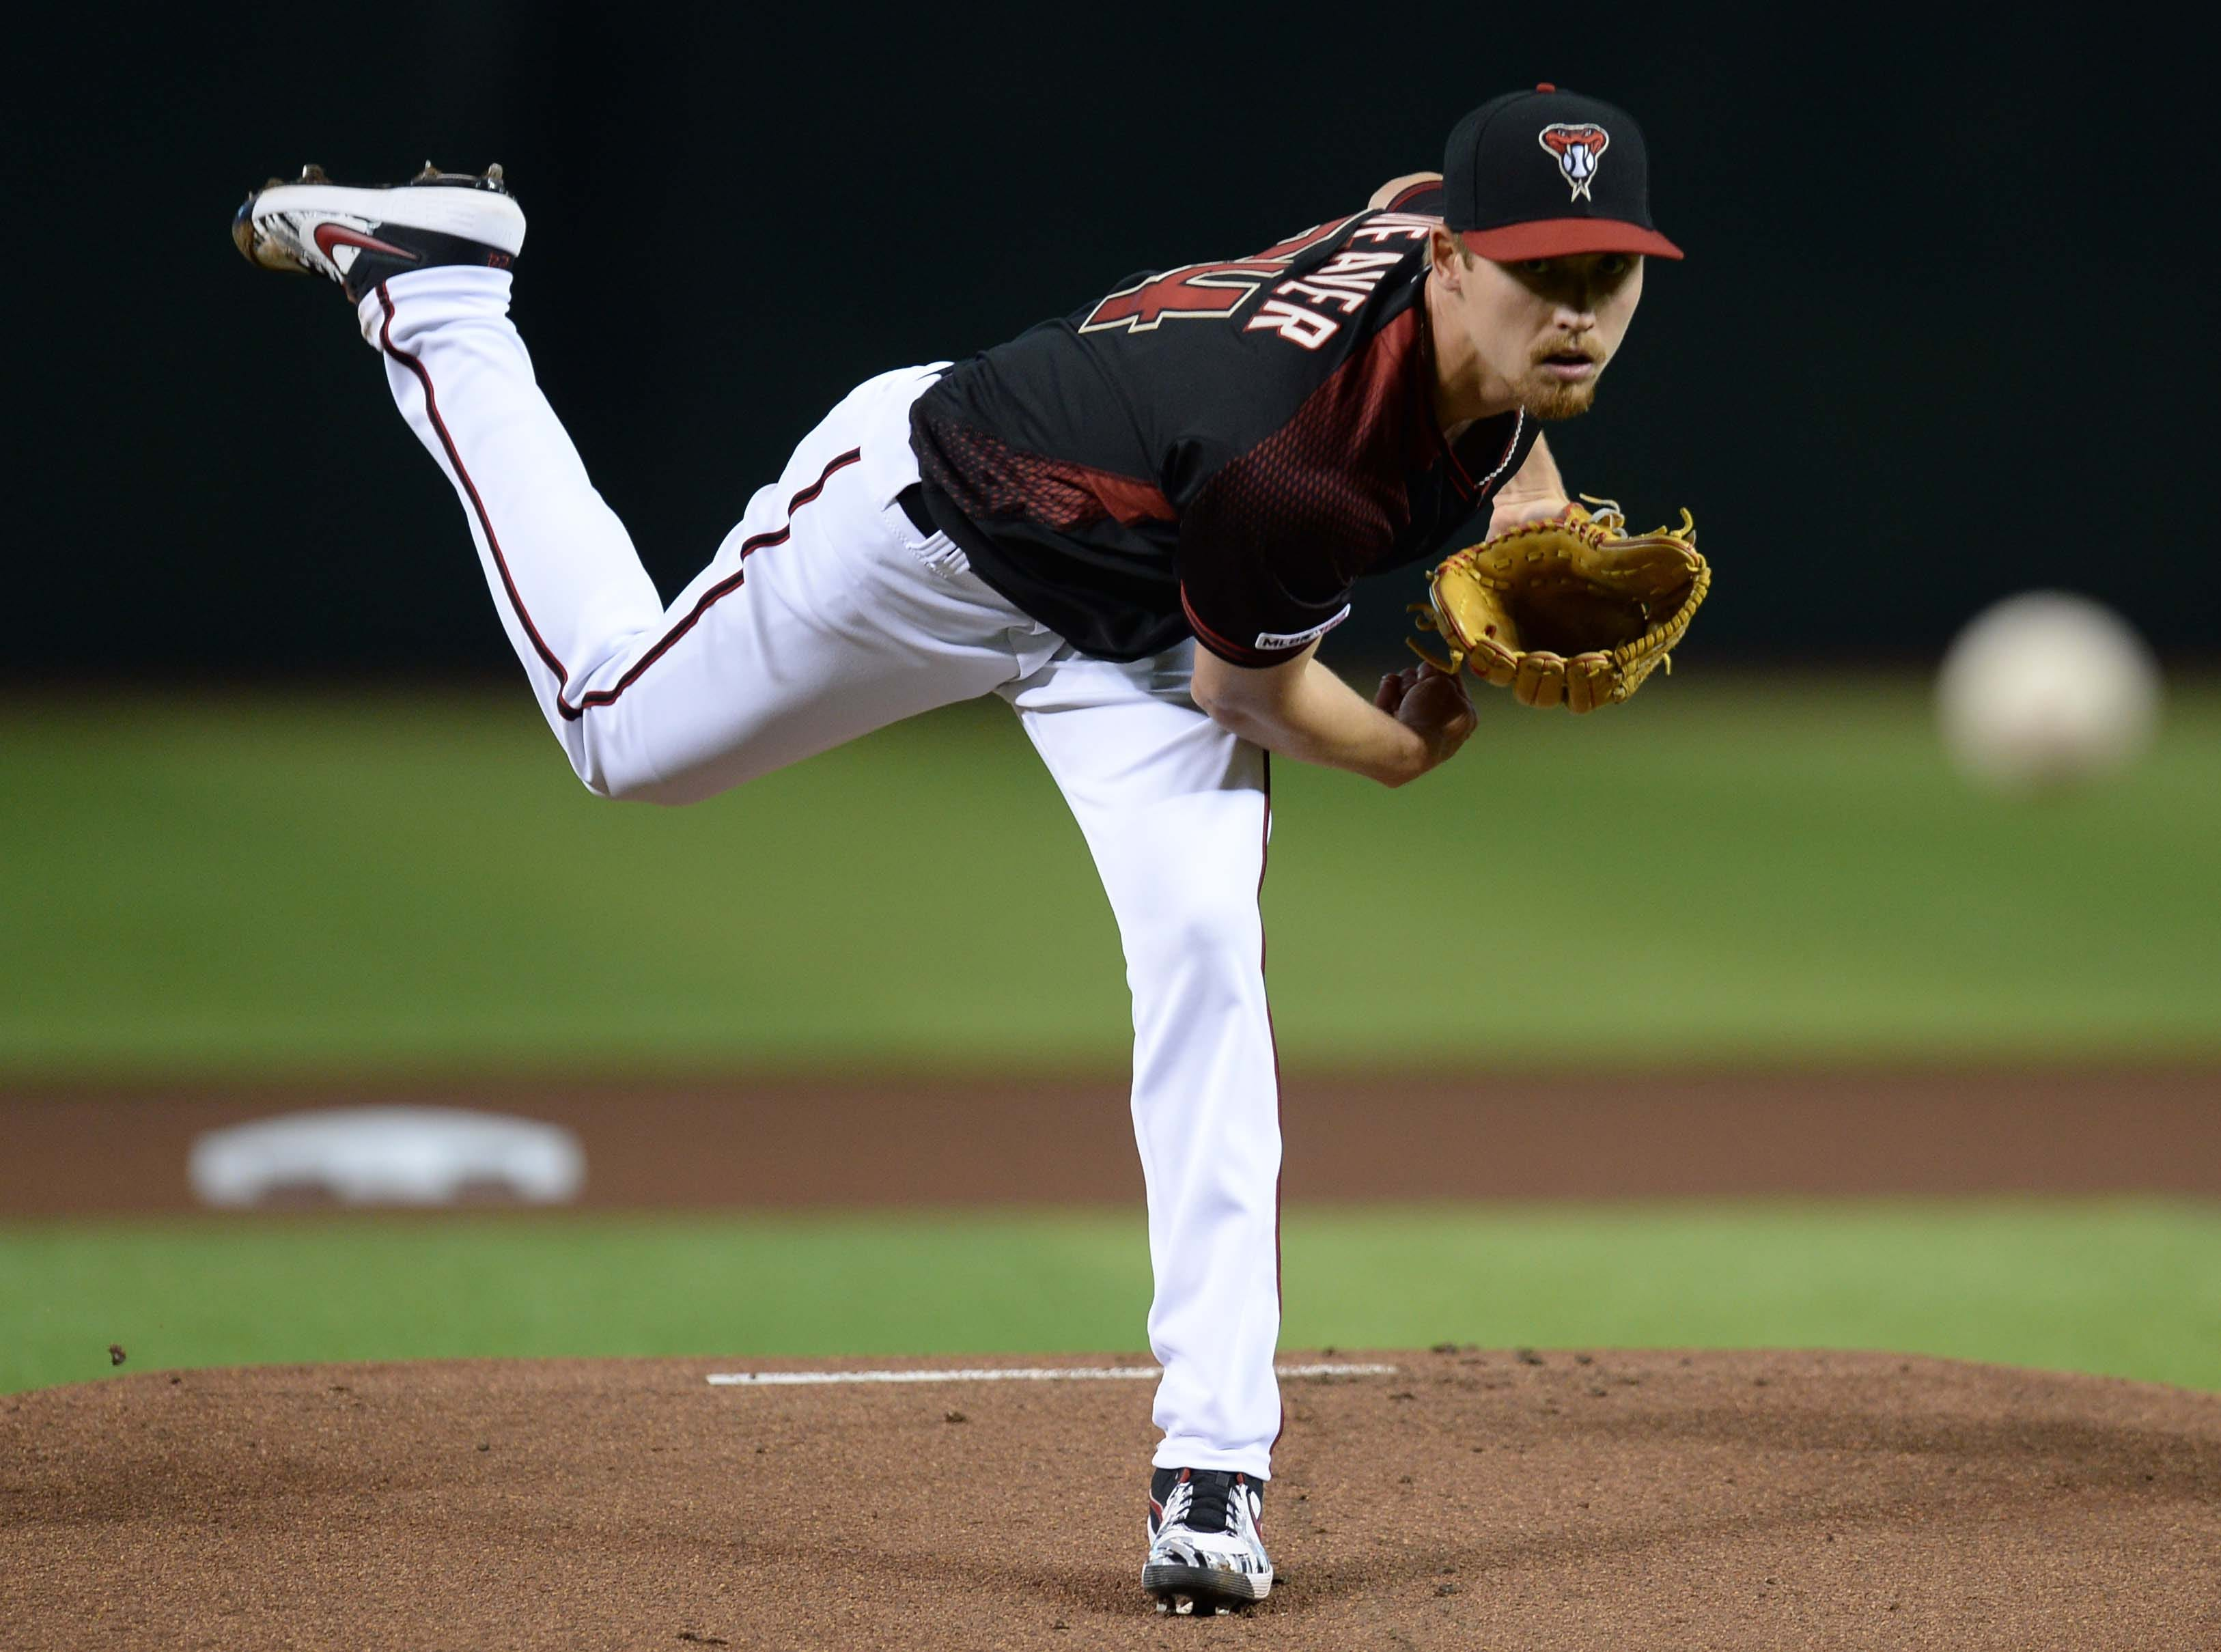 Apr 6, 2019; Phoenix, AZ, USA; Arizona Diamondbacks starting pitcher Luke Weaver (24) pitches against the Boston Red Sox during the first inning at Chase Field. Mandatory Credit: Joe Camporeale-USA TODAY Sports